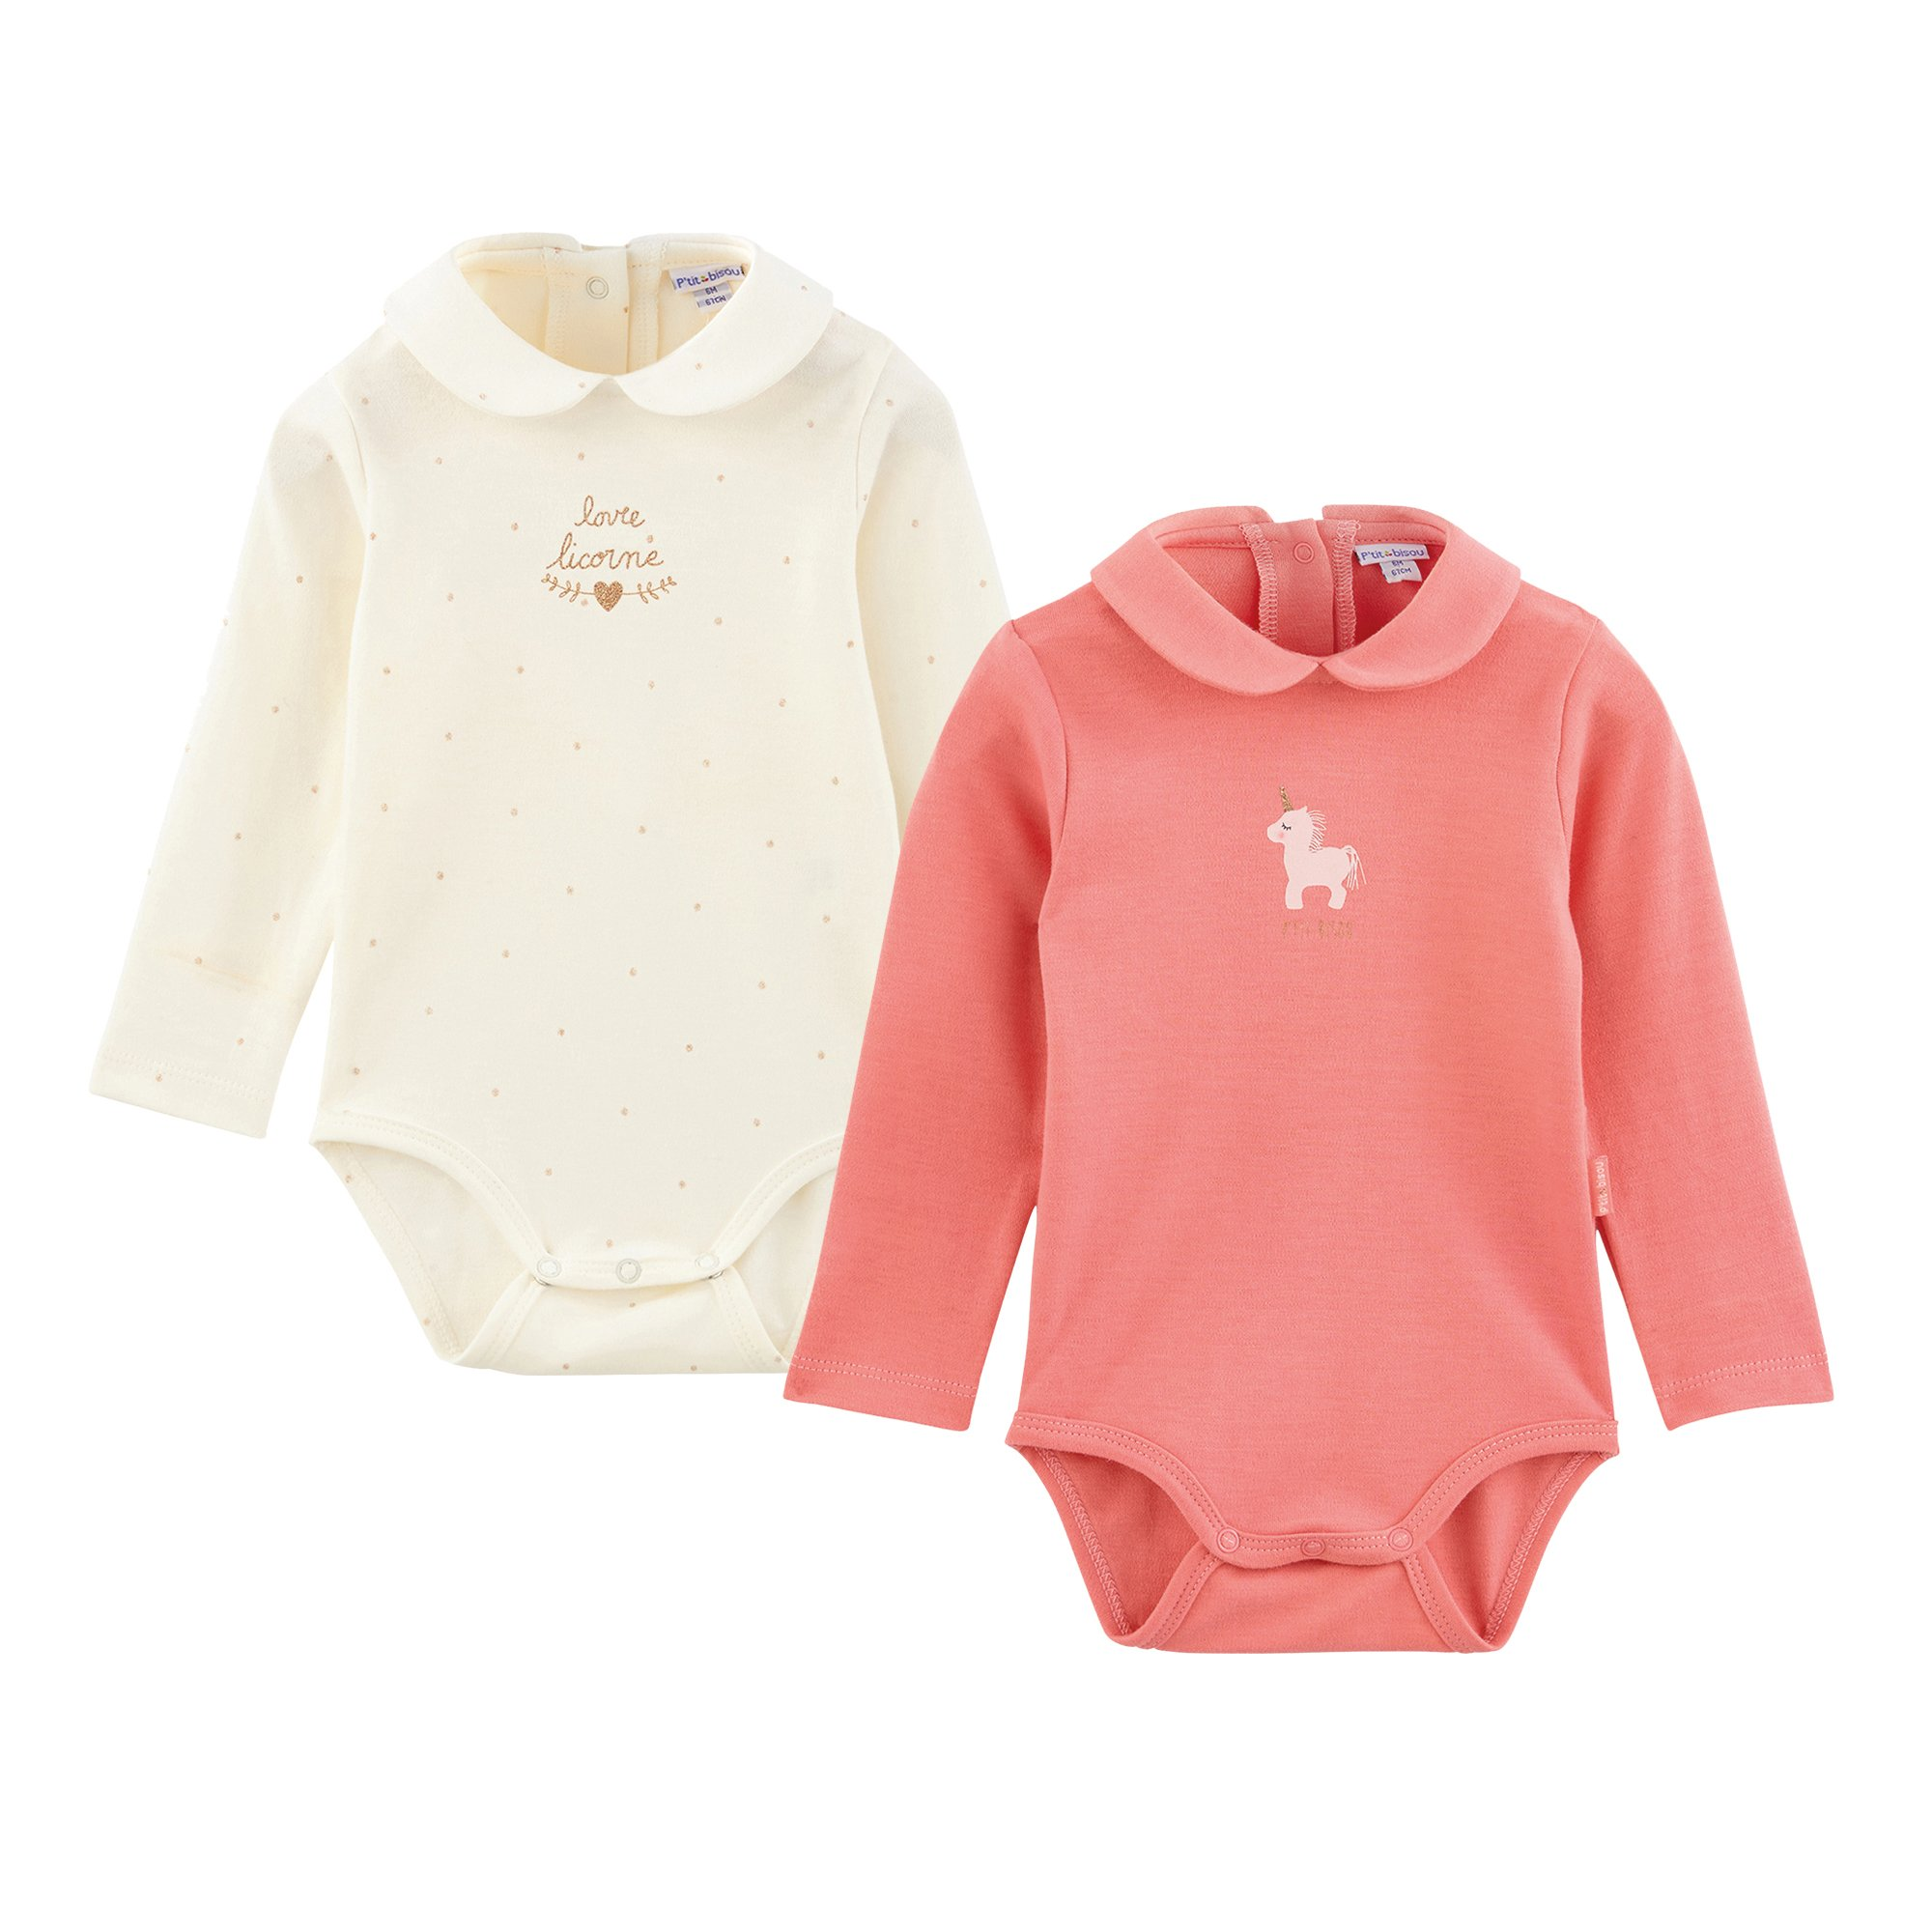 Lot 2 bodies collection Licorne Rose/Blanc Naissance de P'tit Bisou Trousseau